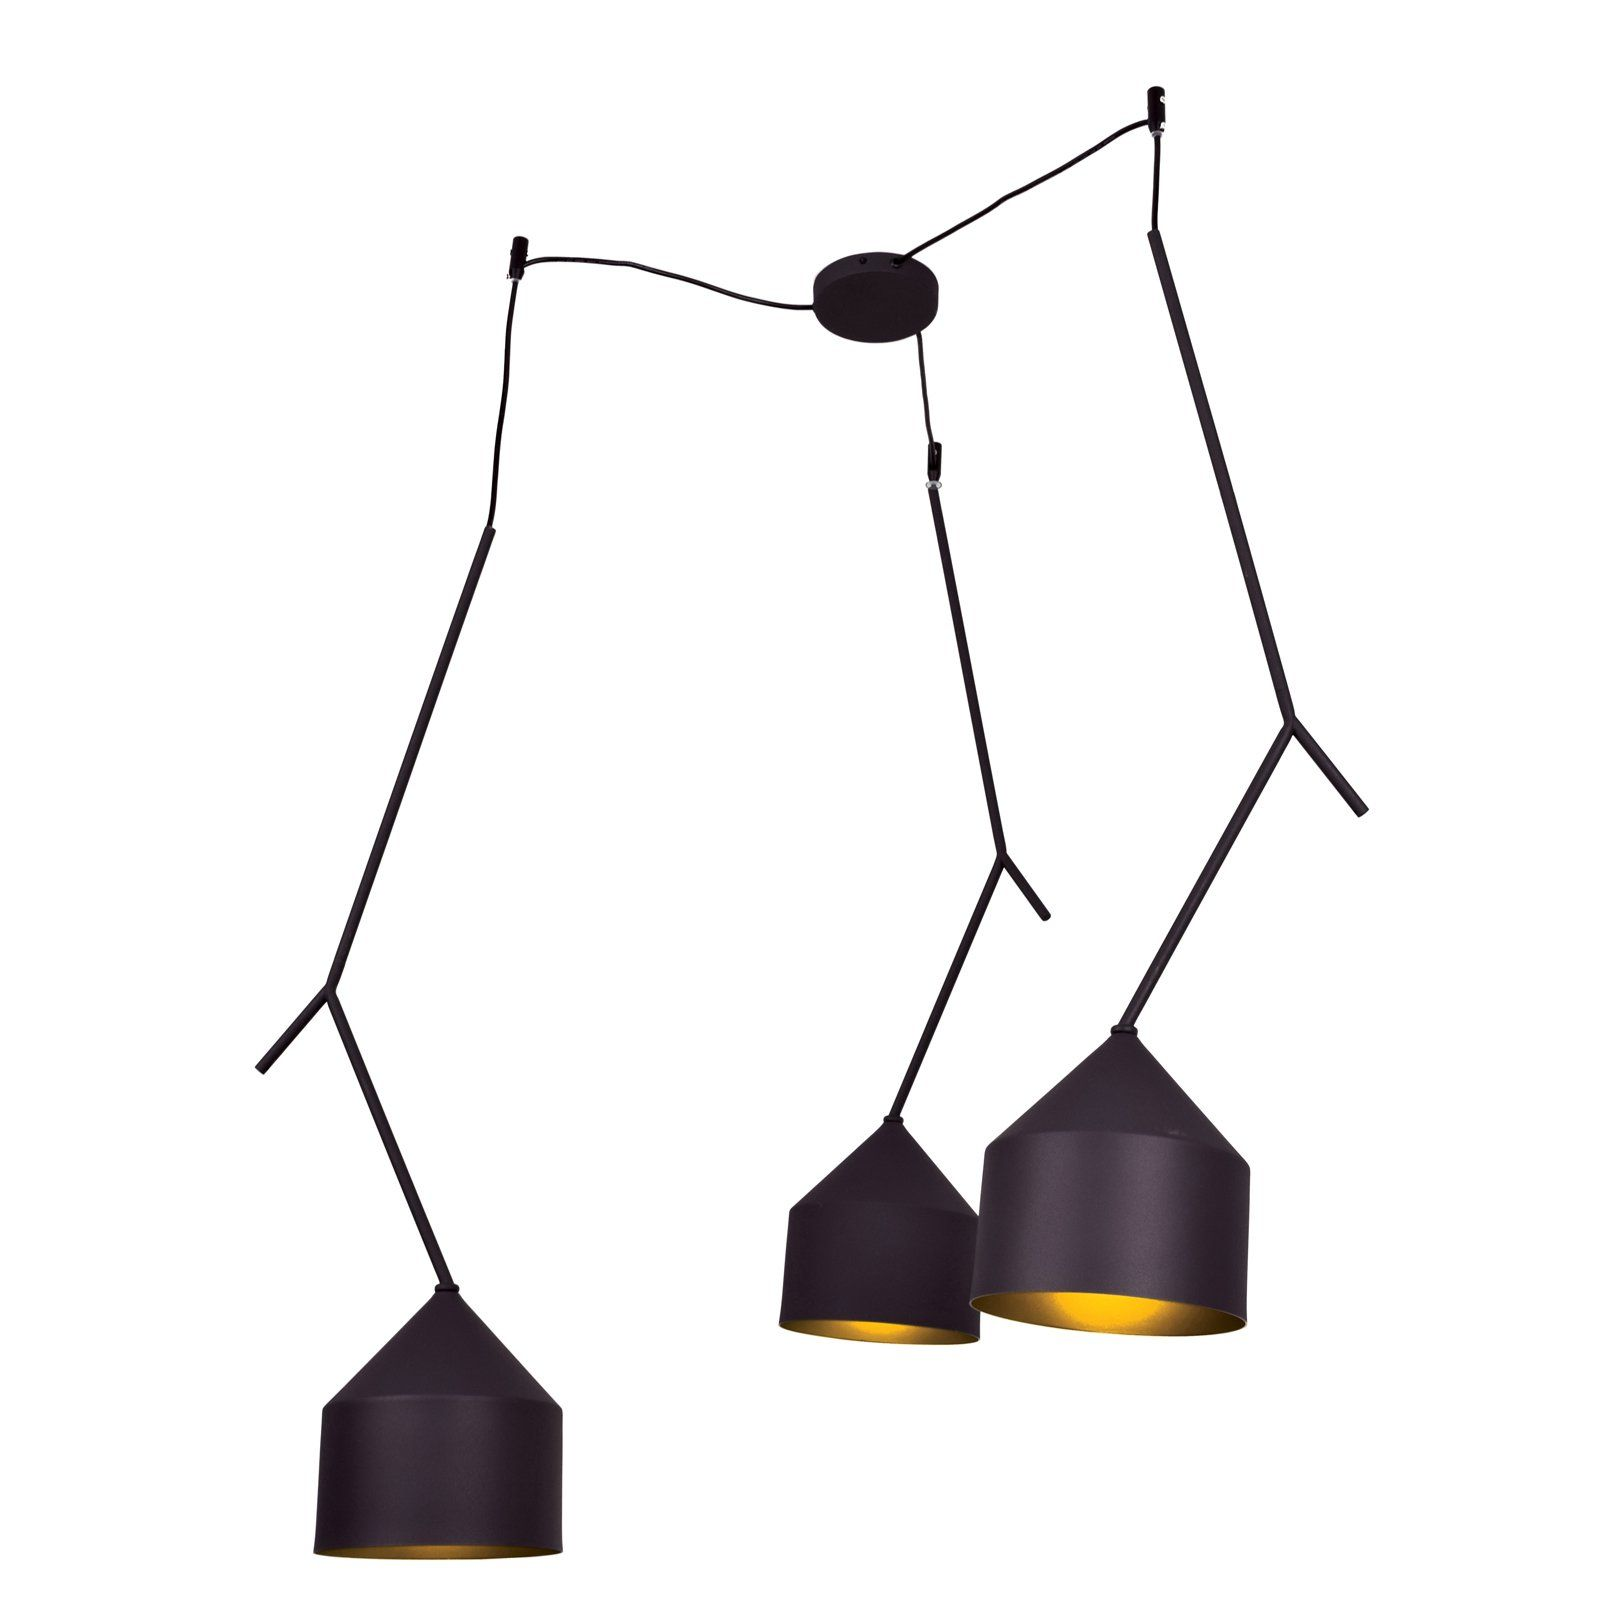 Access Lighting Pizzazz 24880leddlp Pendant Light Products